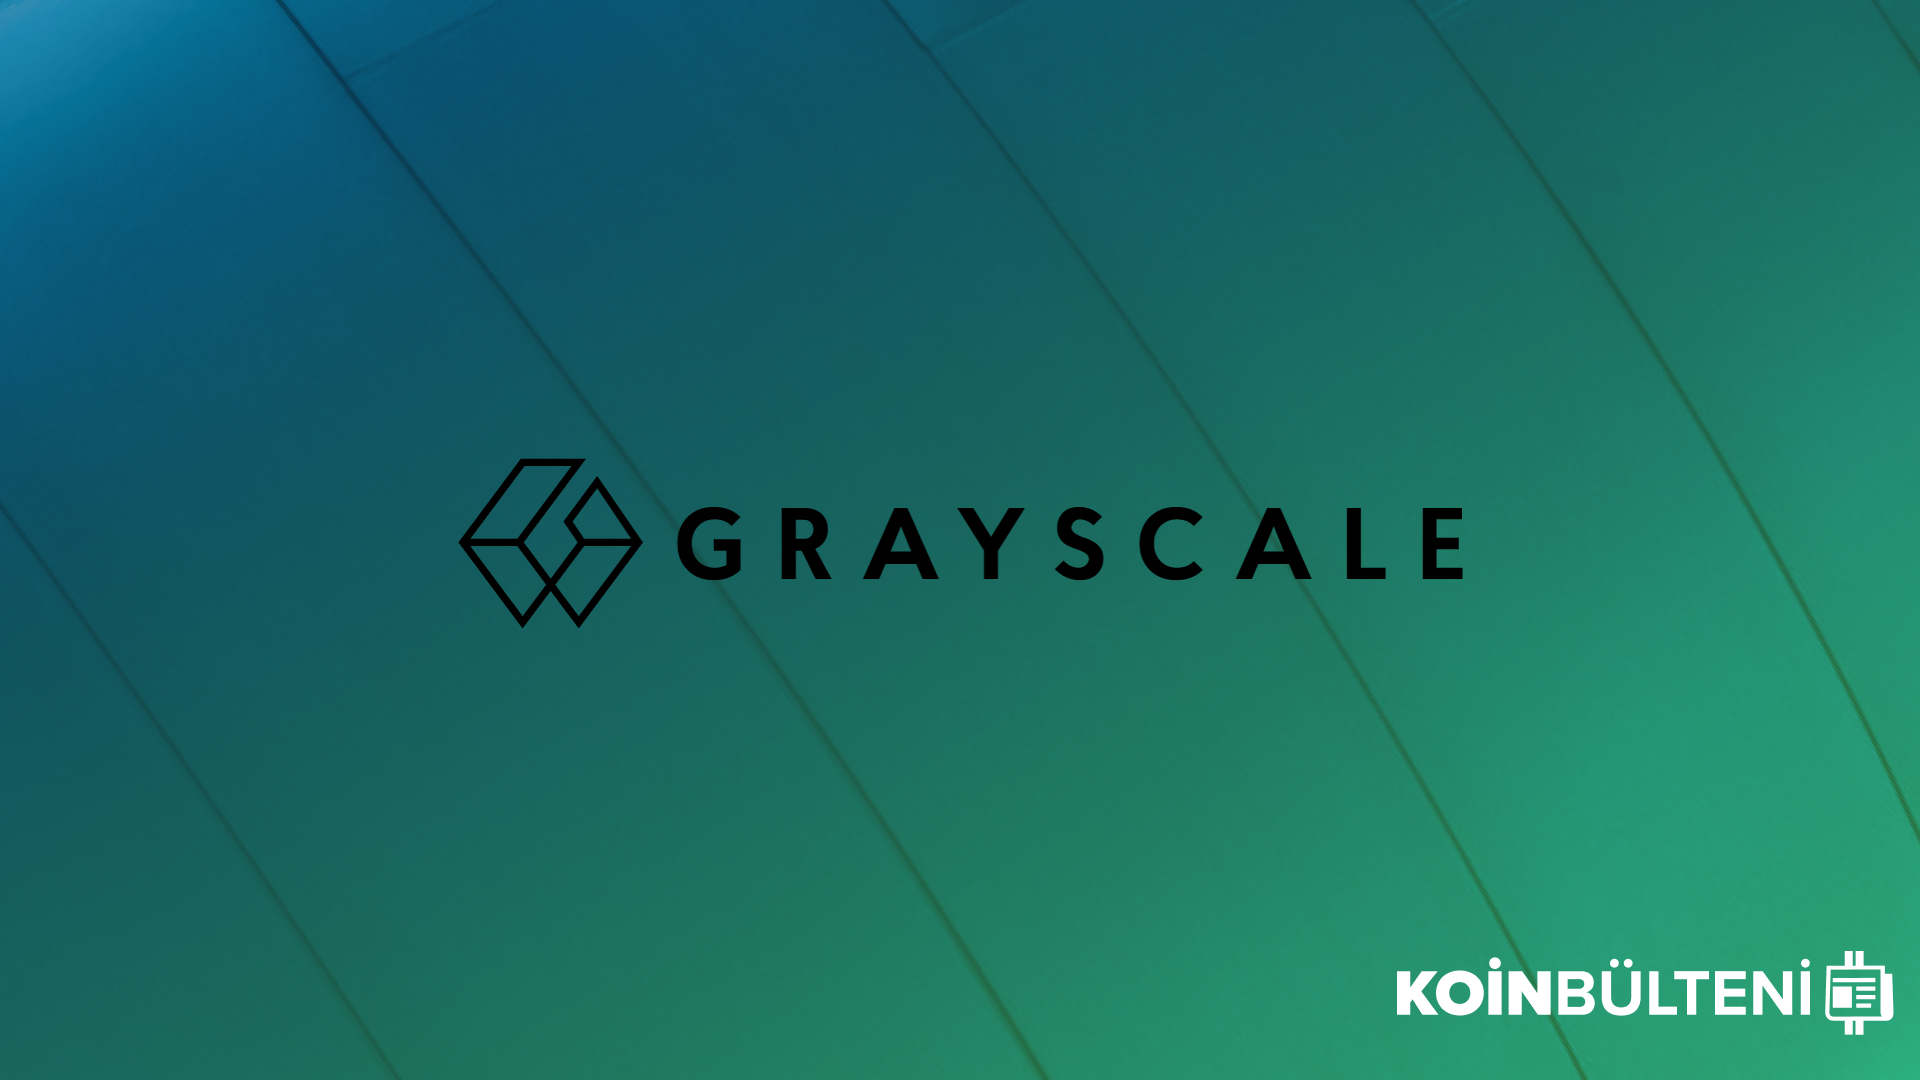 grayscale-basic-attention-token-bat-chainlink-link-filecoin-fil-kripto-para-altcoin-haber